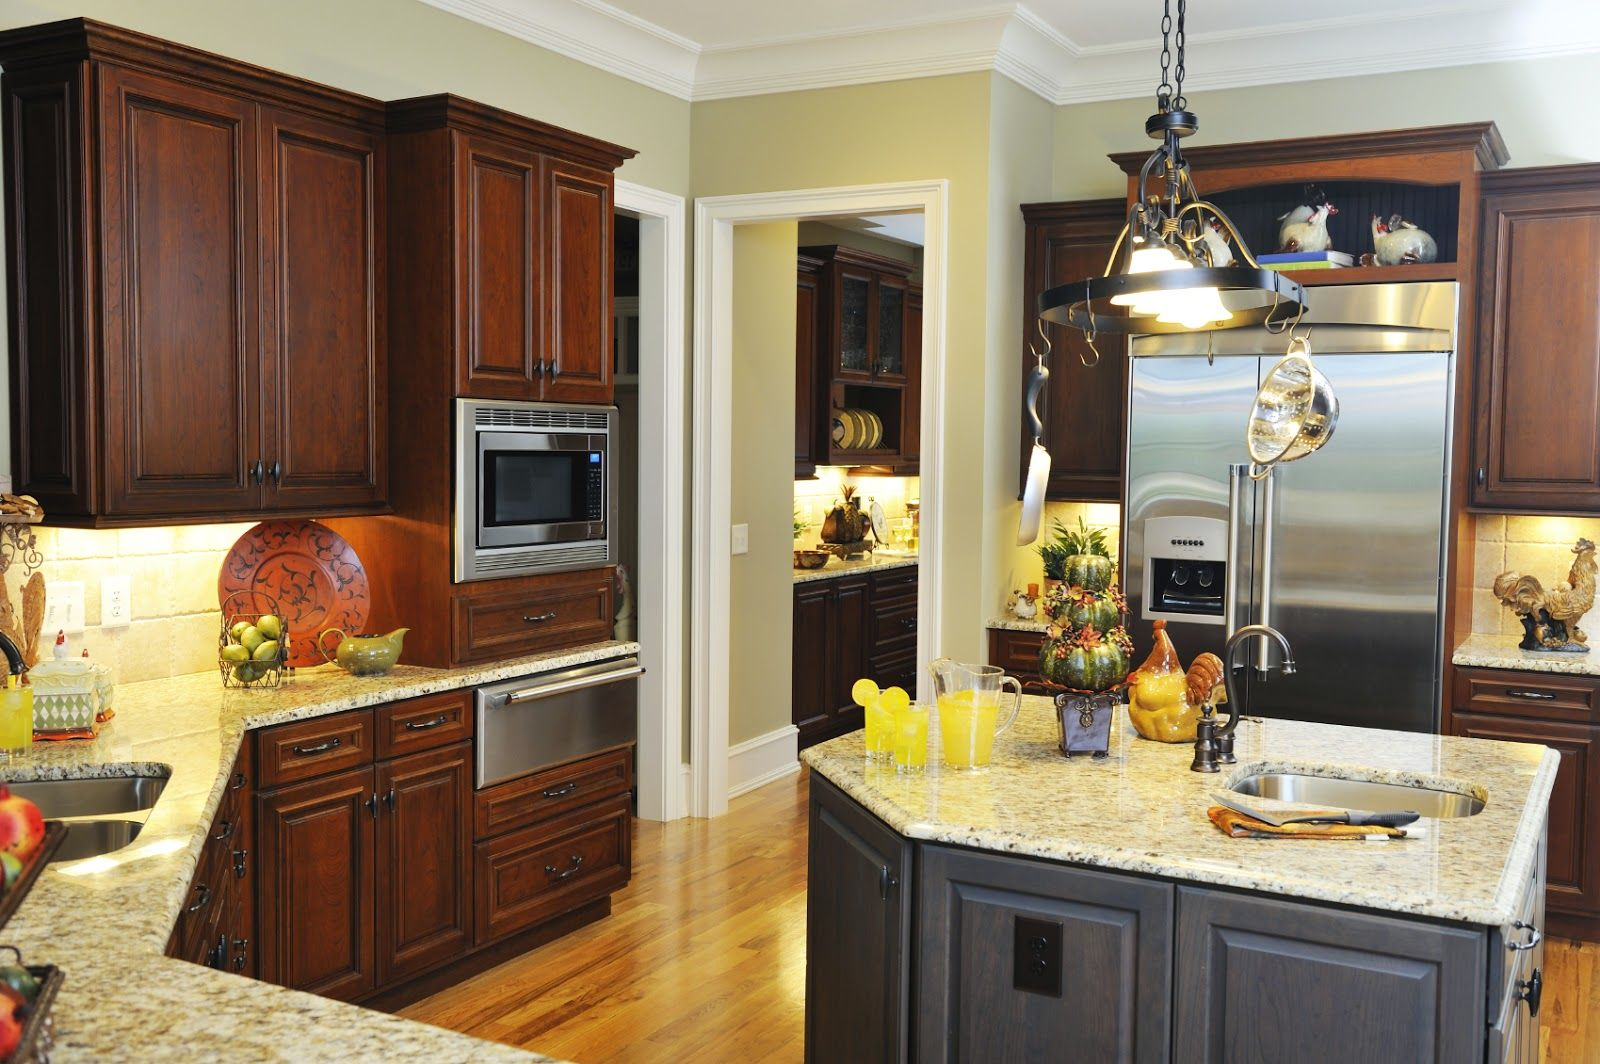 Hı guys 50 luxury Kitchens Desing There's something about dim ... L Kitchen With Island Ideas Html on l kitchen design ideas, kitchen island design ideas, l-shaped kitchen ideas, kitchen built in seating and table ideas,